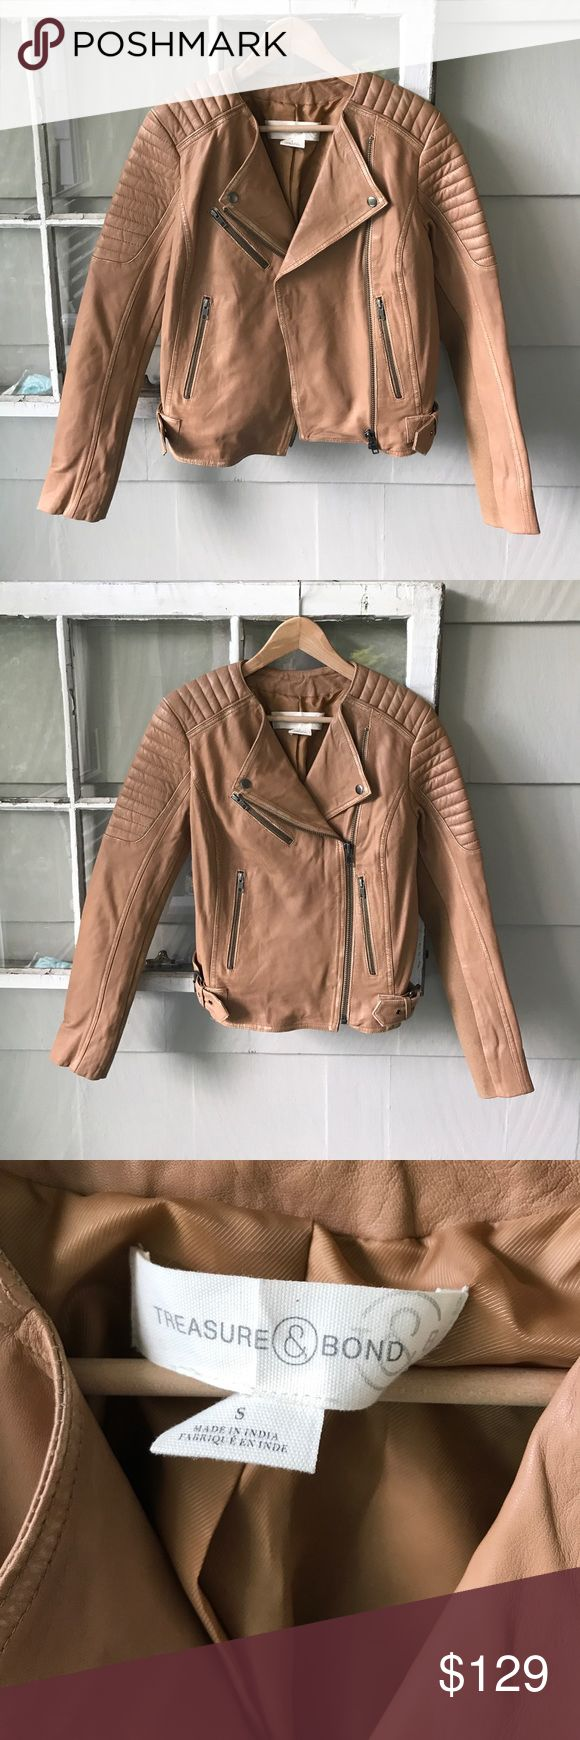 Treasure & Bond Nordstrom Camel Leather Biker Moto Soft, Buttery Leather Jacket by Treasure & Bond from Nordstrom. Excellent condition. Camel color. Fully lined. No issues! This looks great with cutoffs and a white tank for cool summer evenings. No trades, please. Selling for a friend! Size small, fits like a 4. Treasure & Bond Jackets & Coats